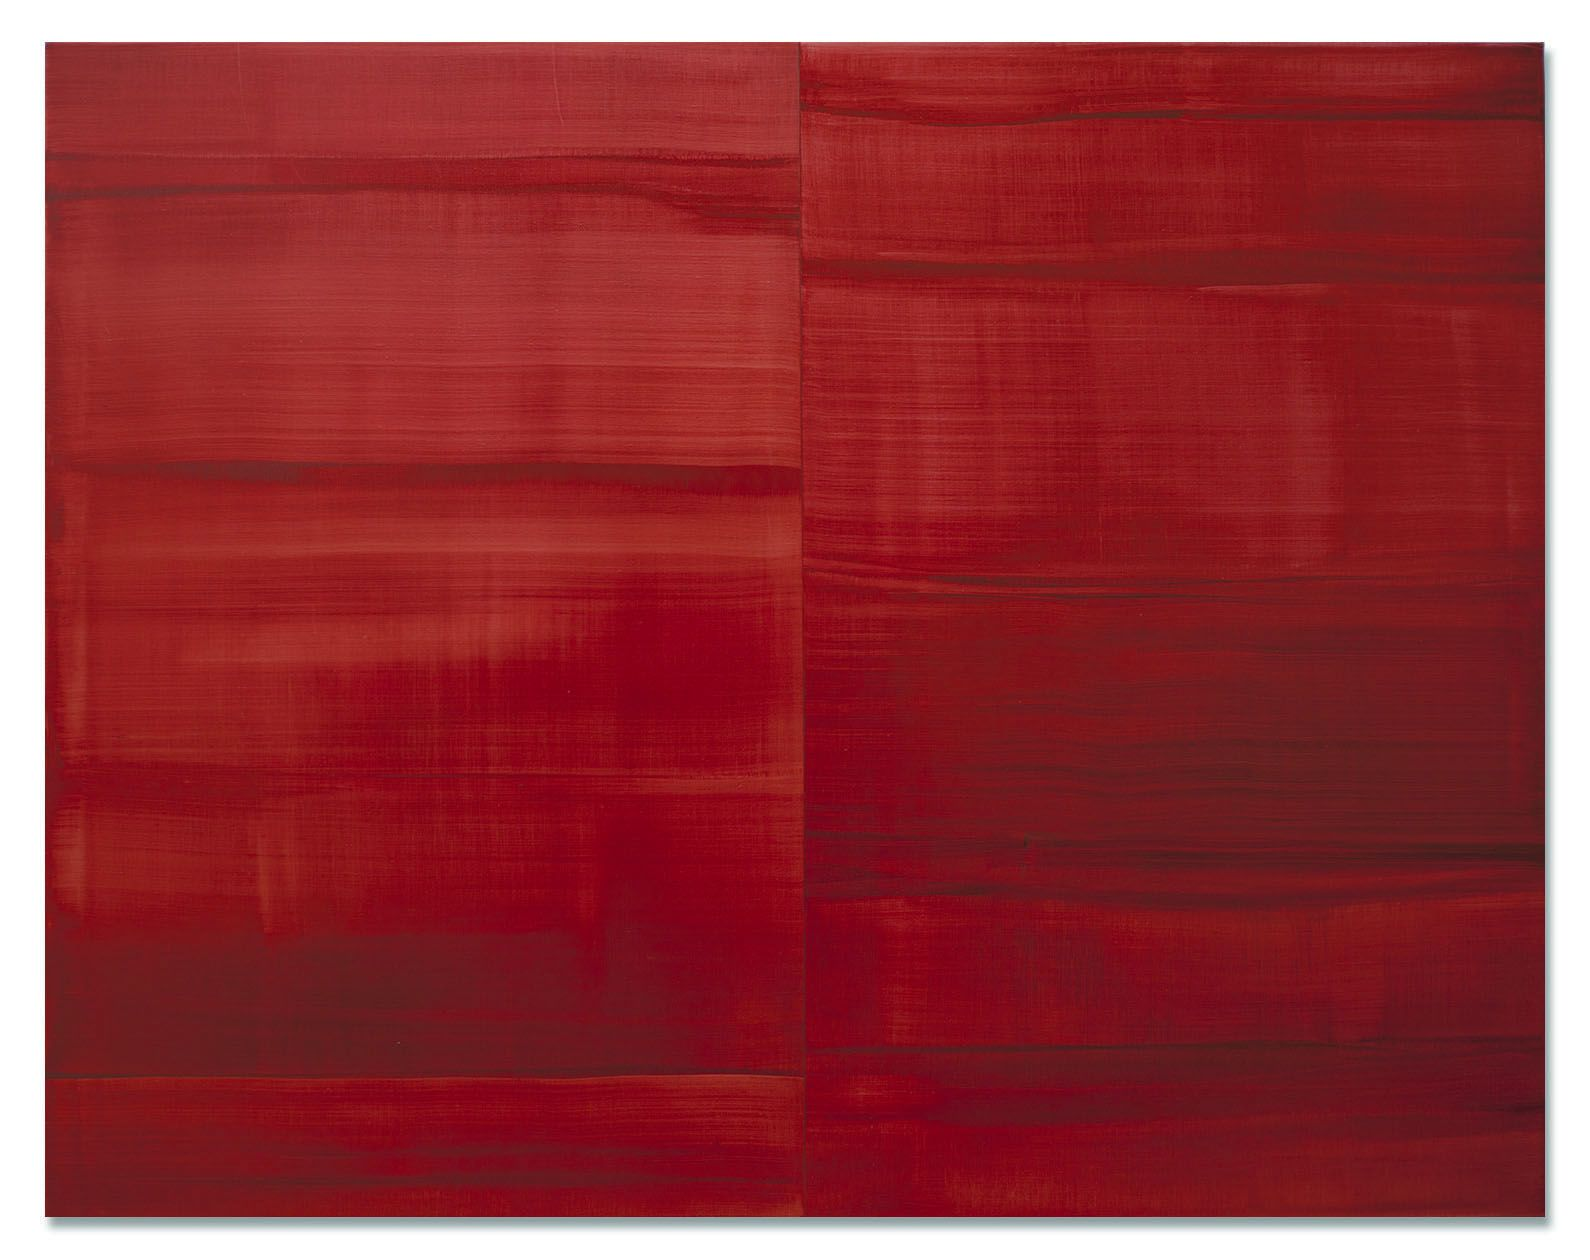 Guadalajara Red, 2016, oil on linen, 55 x 70 inches/139.7 x 177.8 cm